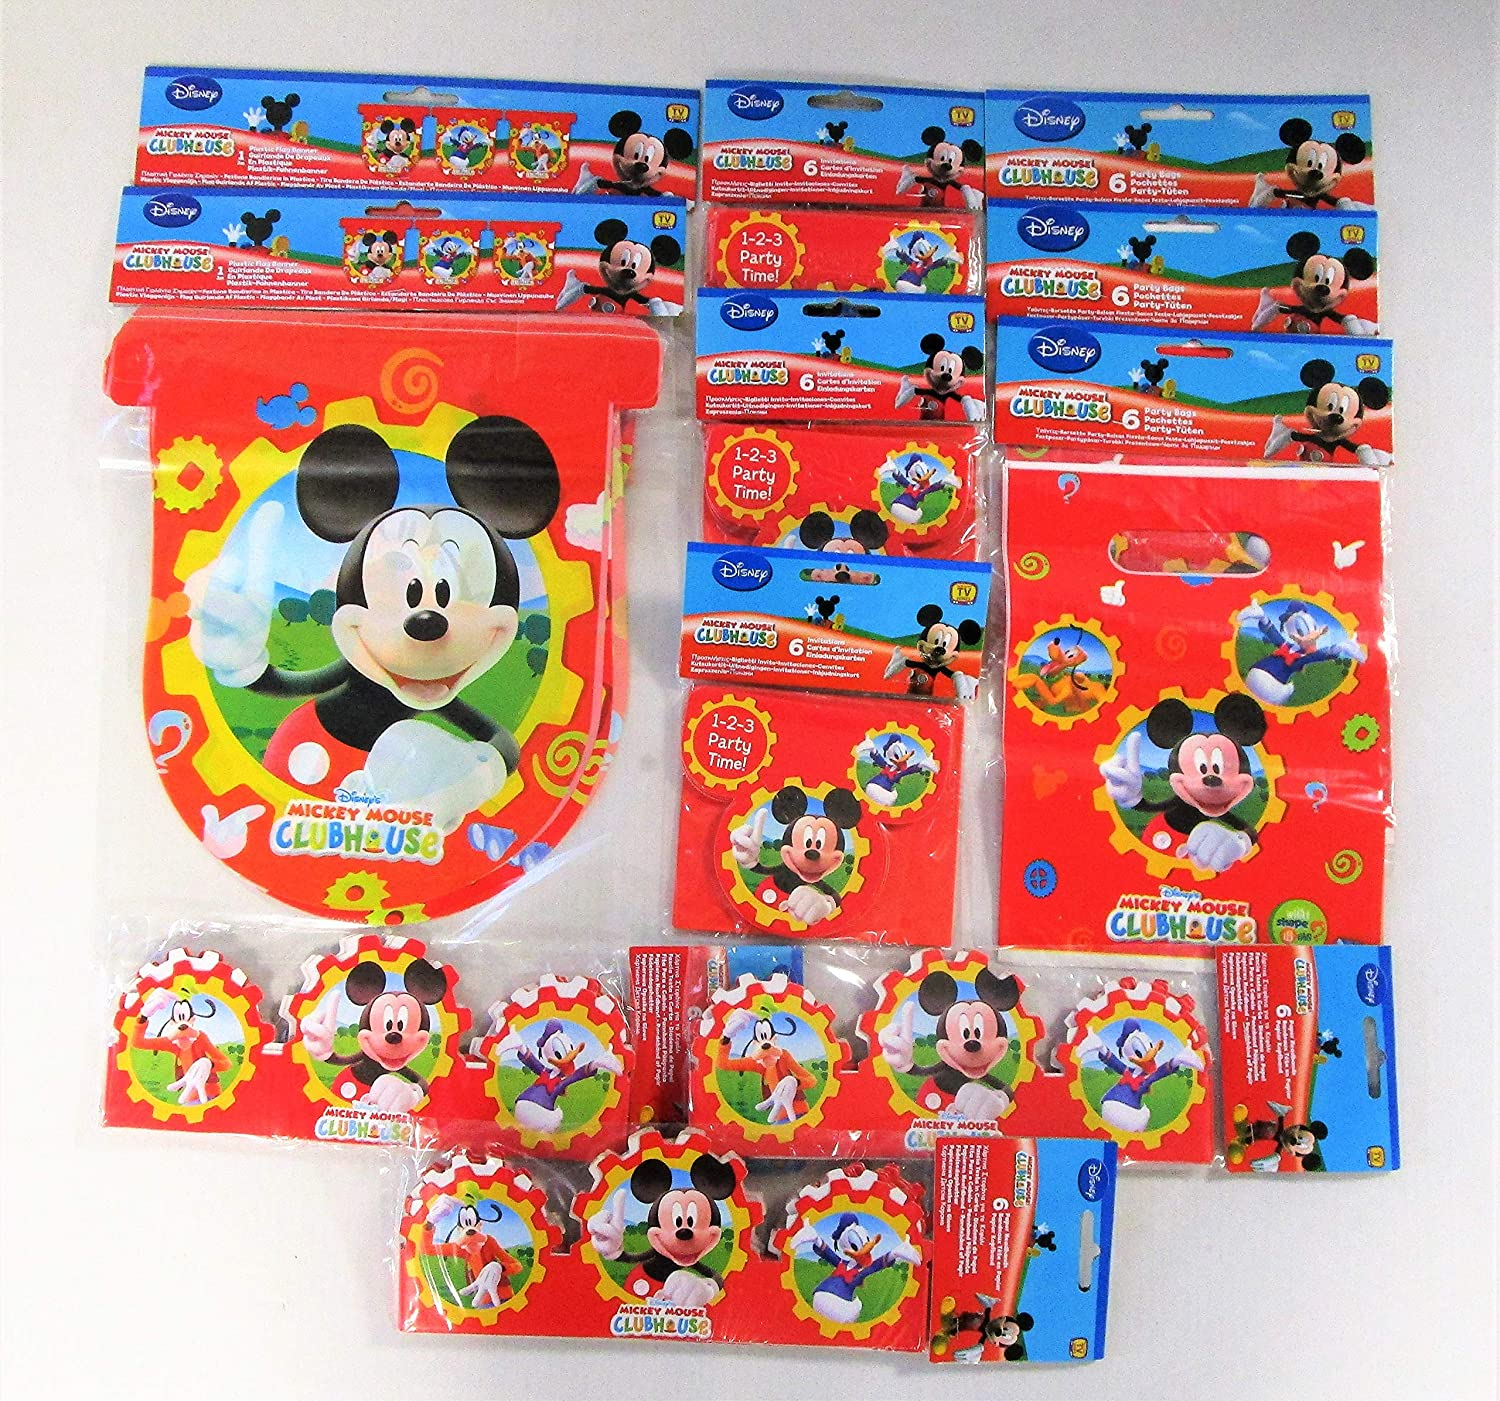 Disney Mickey Mouse Clubhouse Party Pack For 18 People